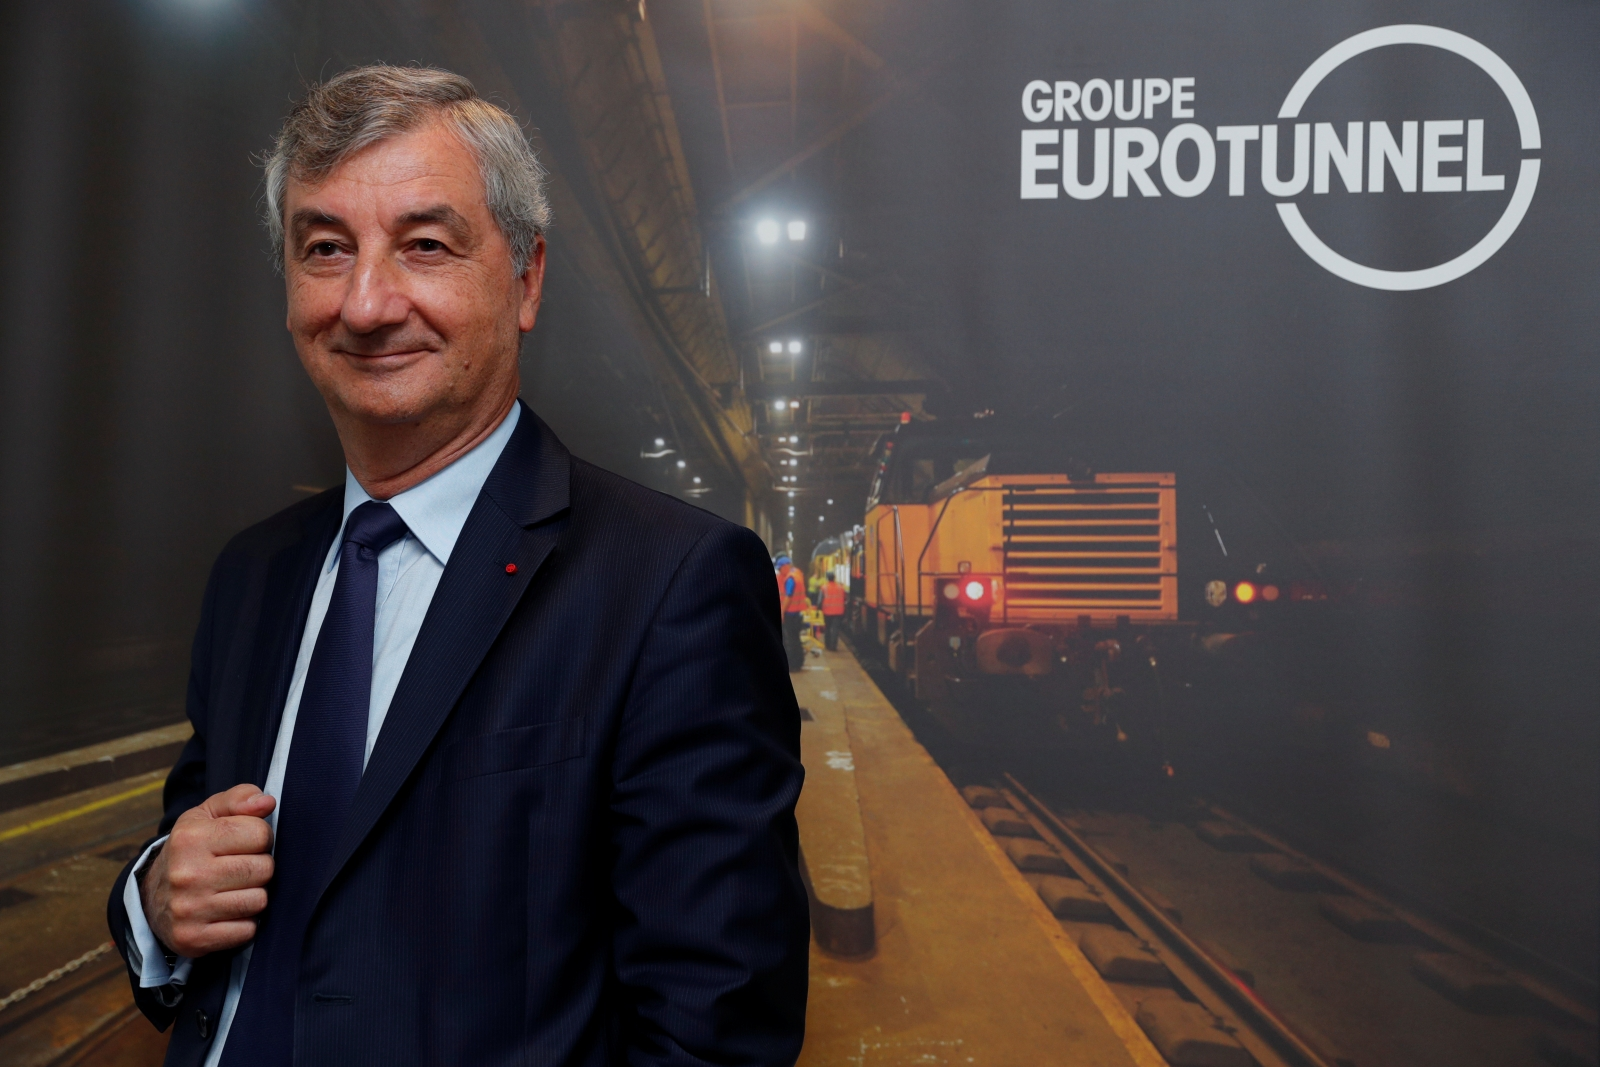 Groupe Eurotunnel posts an increase in Q3 revenues despite decline in Eurostar traffic